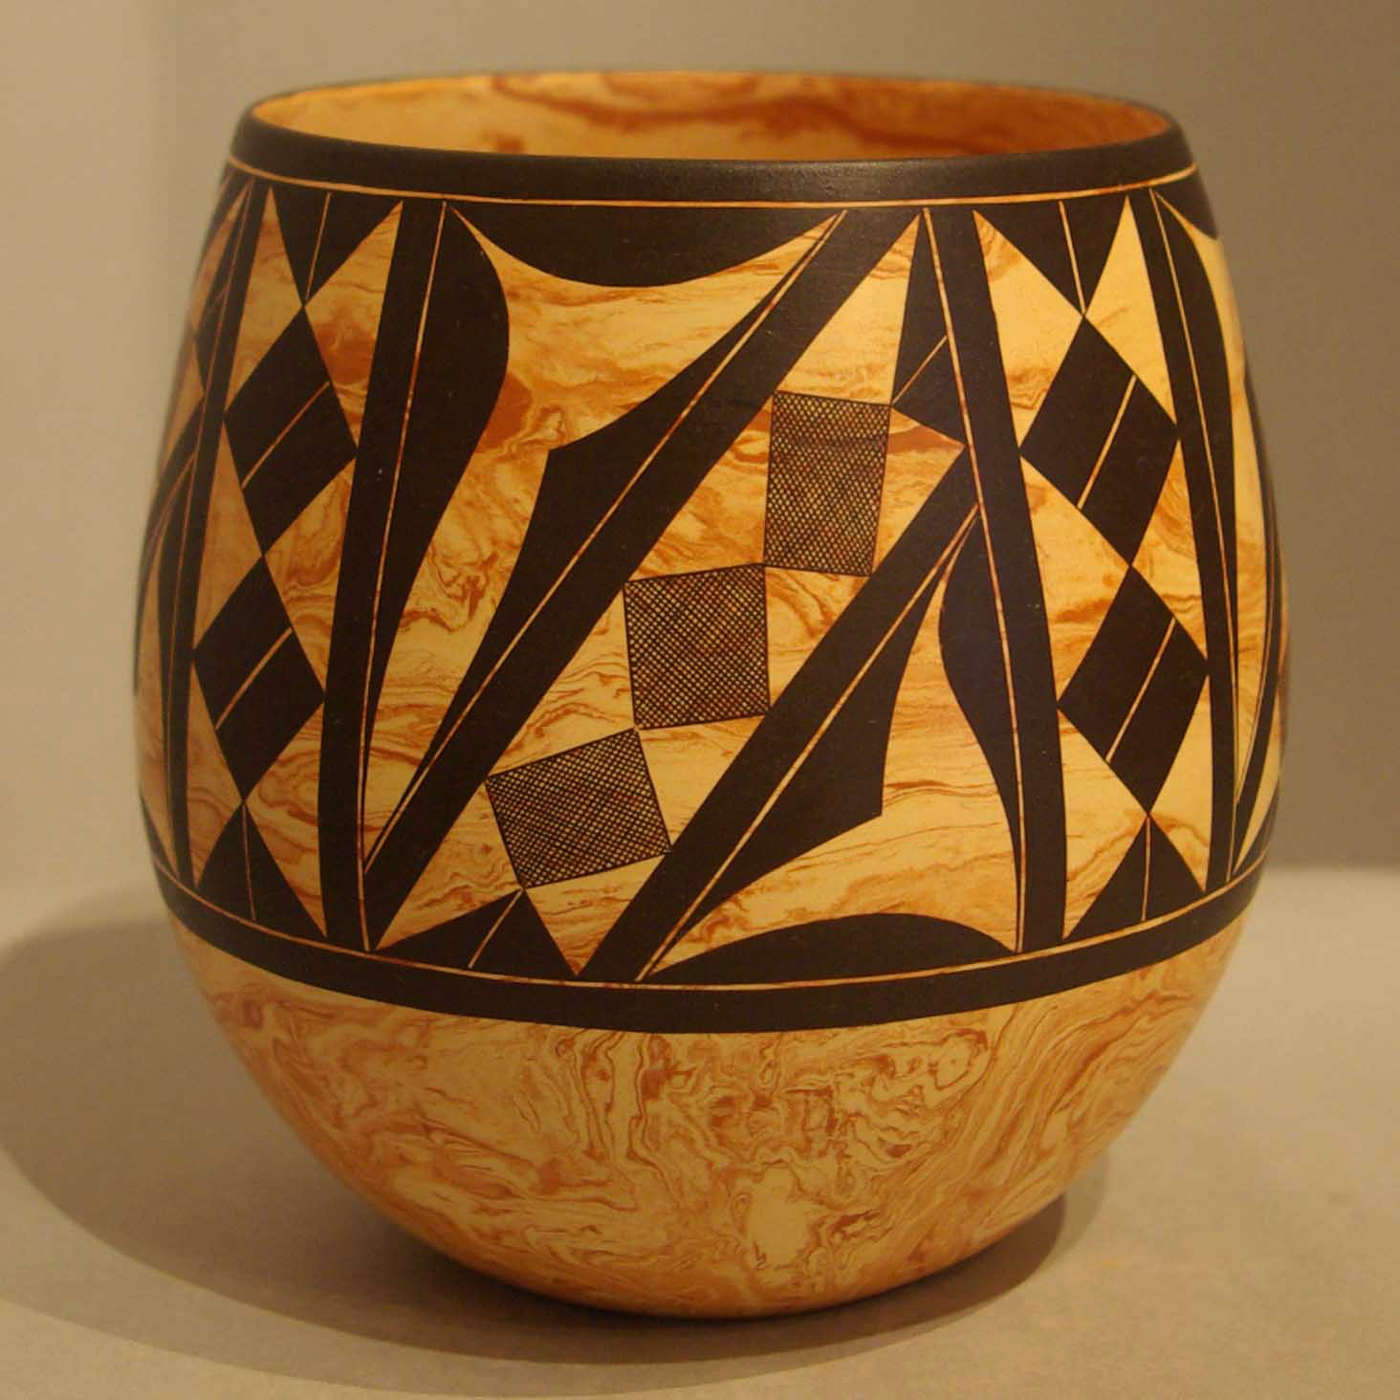 Calvin analla jr pots 1 laguna pueblo potters in for Big pot painting designs